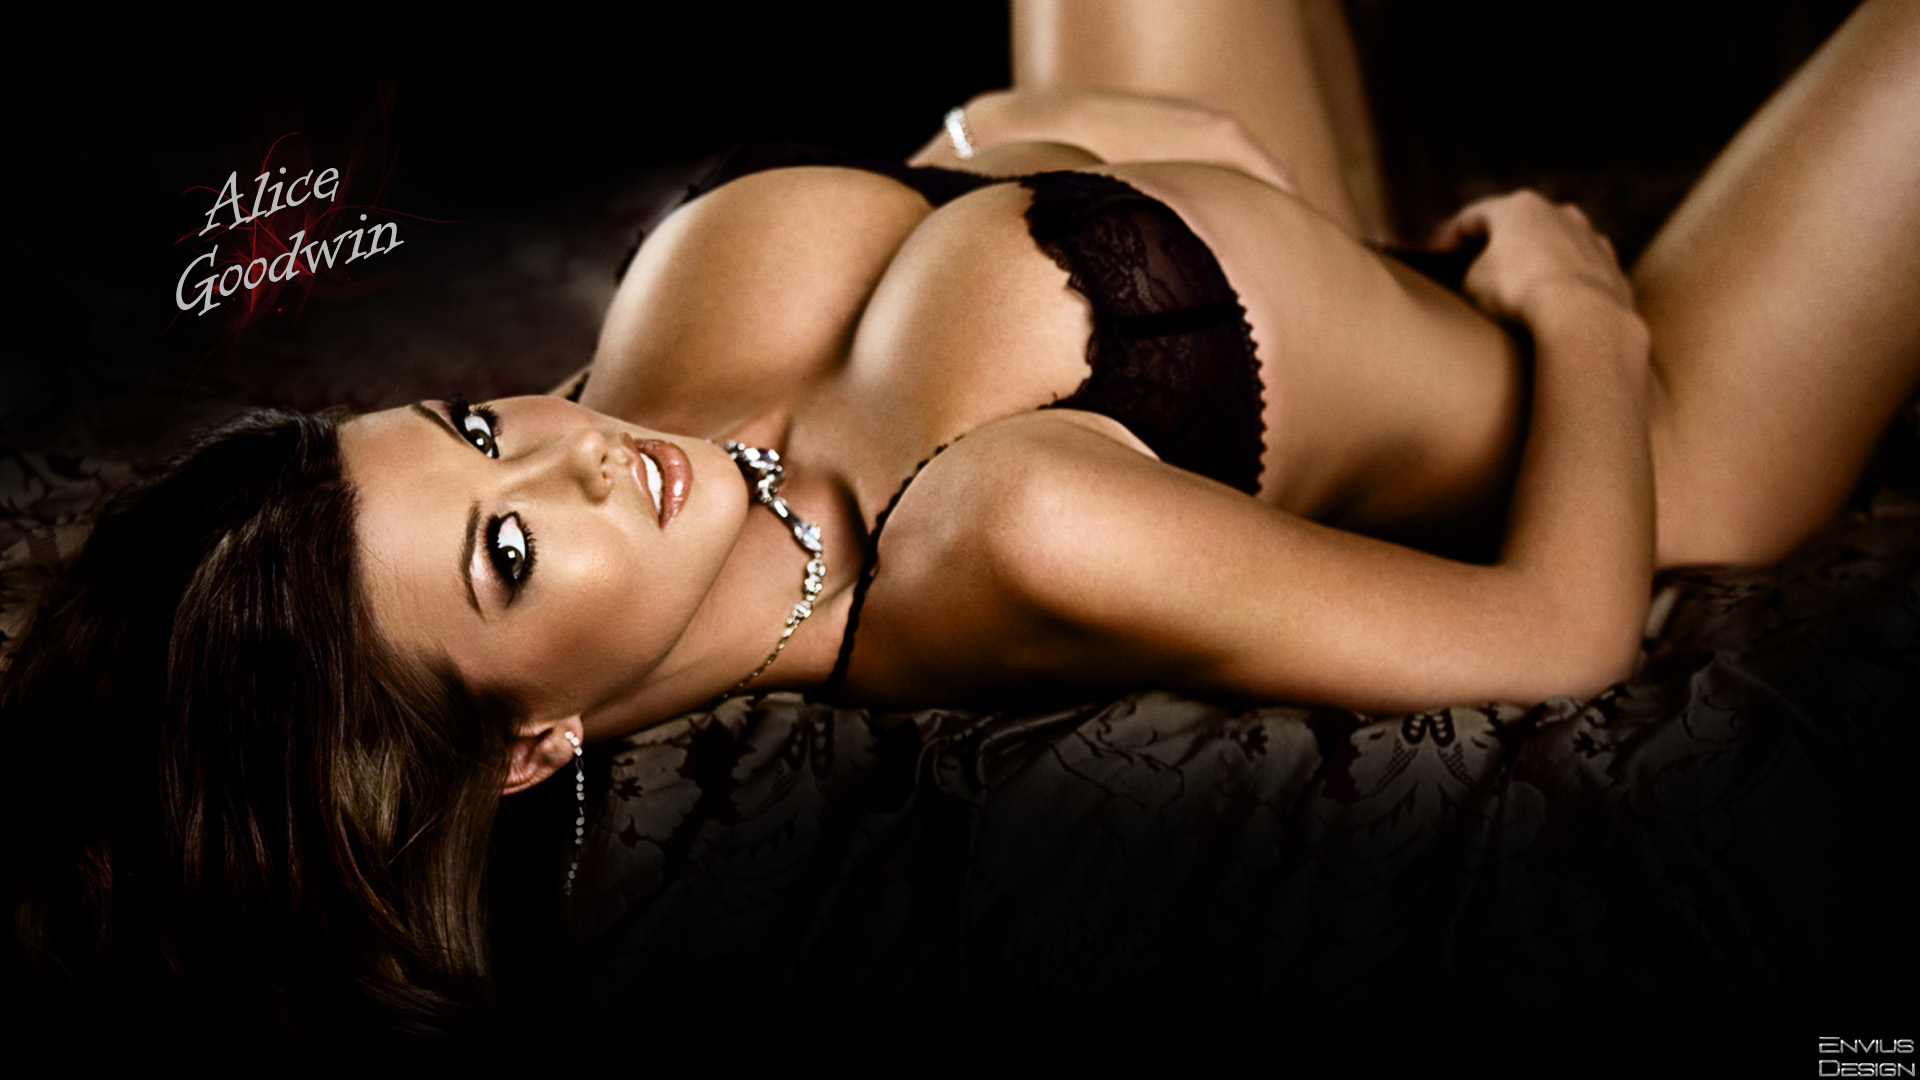 Group Of Alice Goodwin Wallpaper By